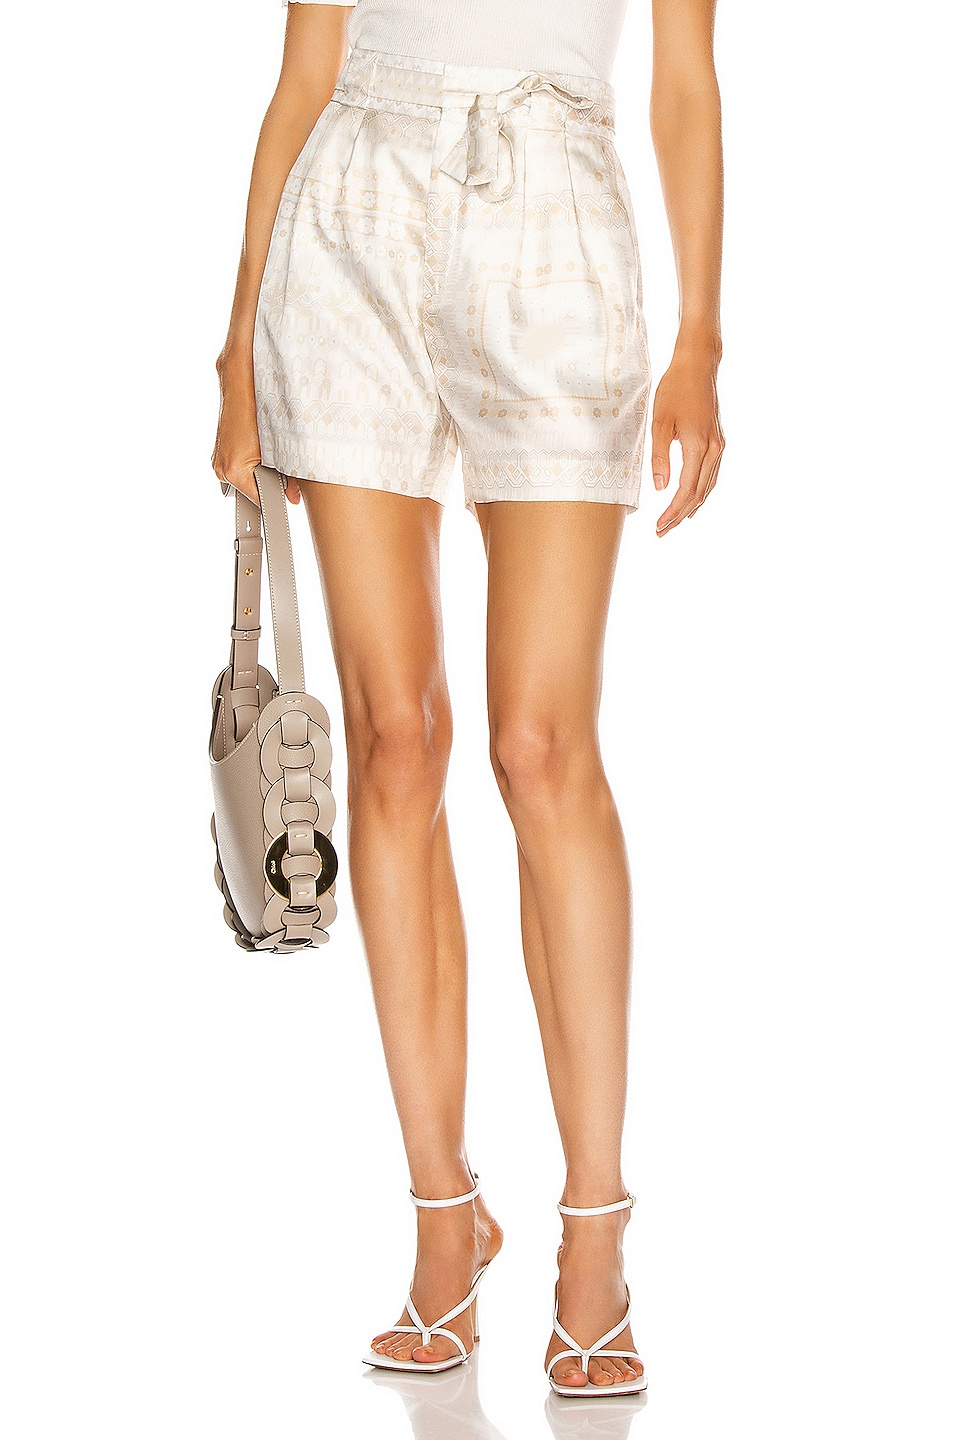 Image 1 of Chloe Mosaic Tie Short in Multicolor White